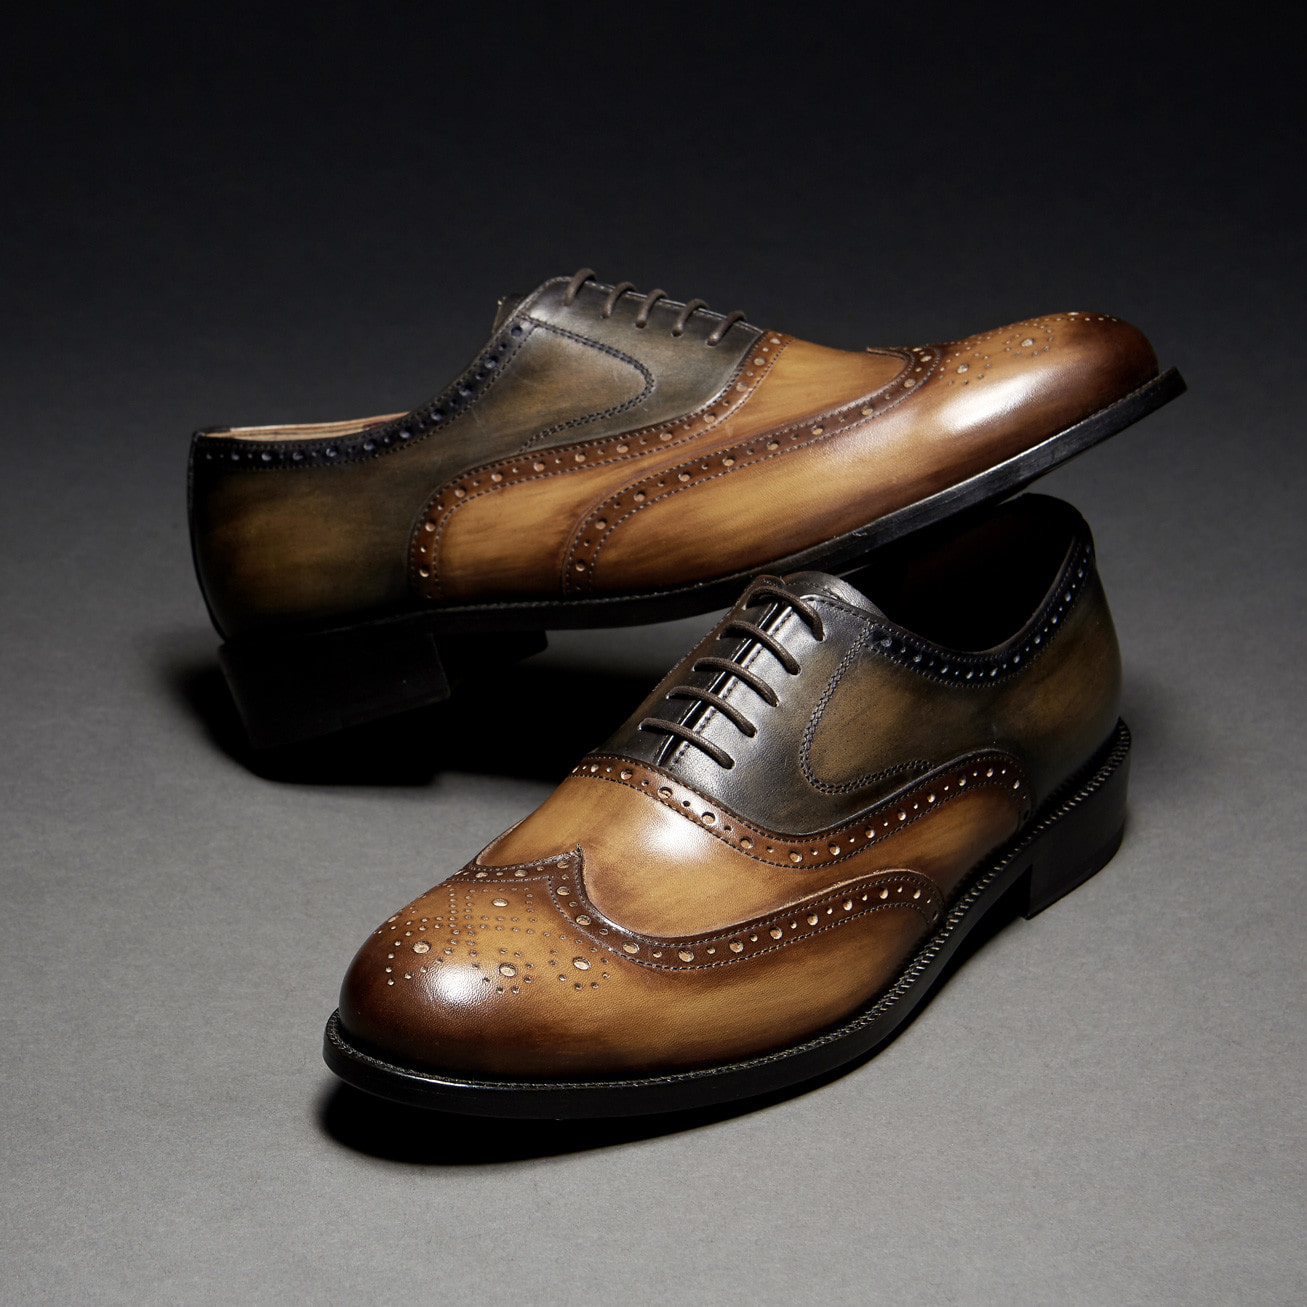 [Custommania X The shuri] PATINA WING TIP OXFORD OFR No.242